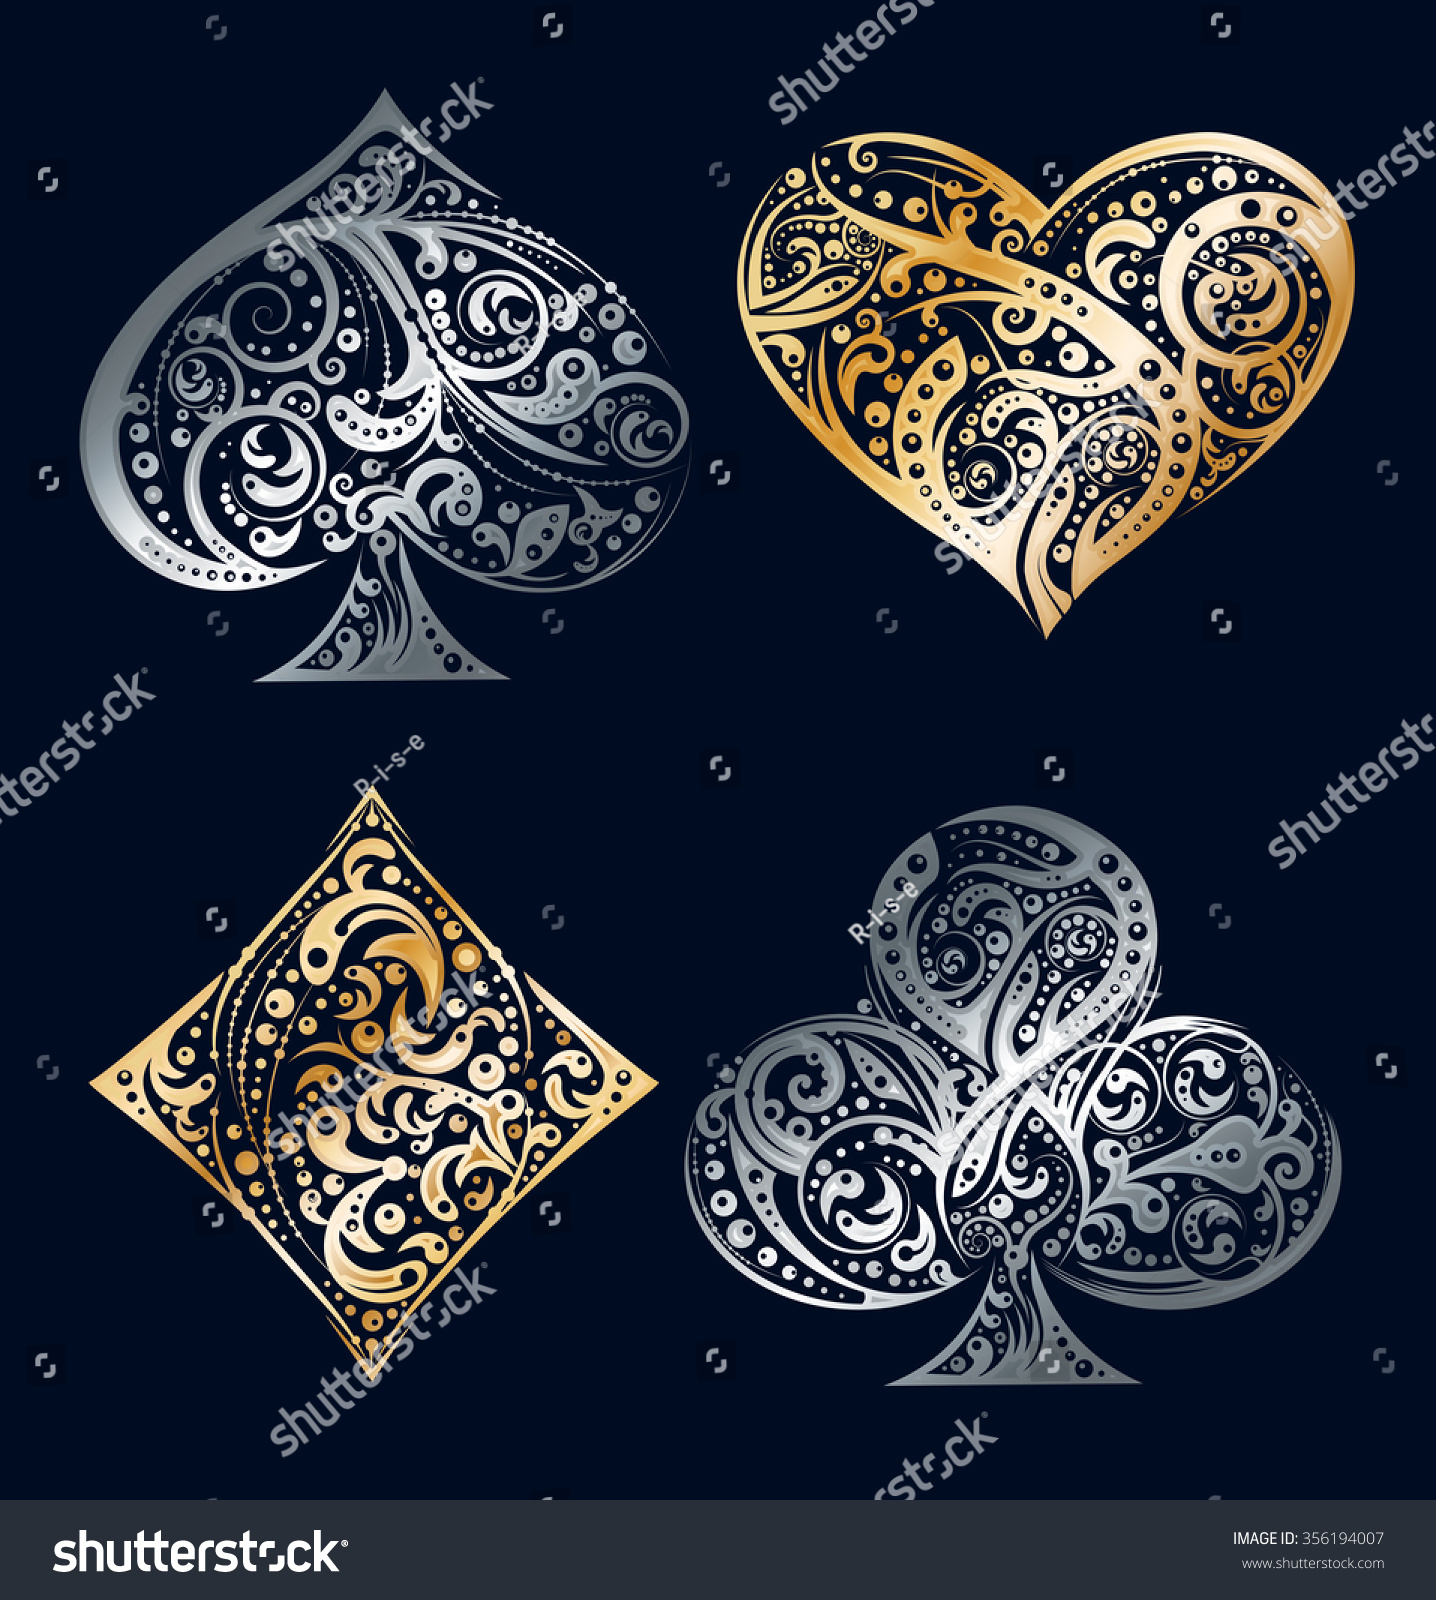 Set of four vector playing card suit symbols made by floral elements Vintage stylized illustration in silver and golden colors on black background Works well as print computer icon logo